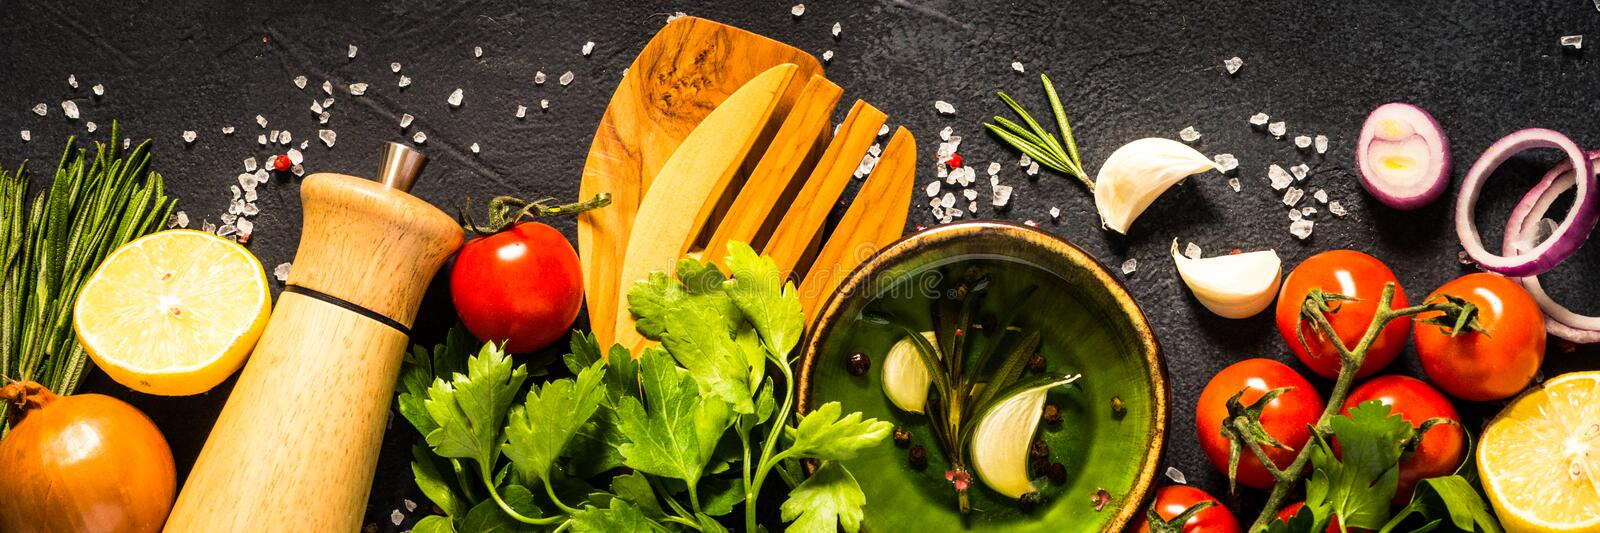 31,366 Long Food Table Photos - Free & Royalty-Free Stock Photos from  Dreamstime